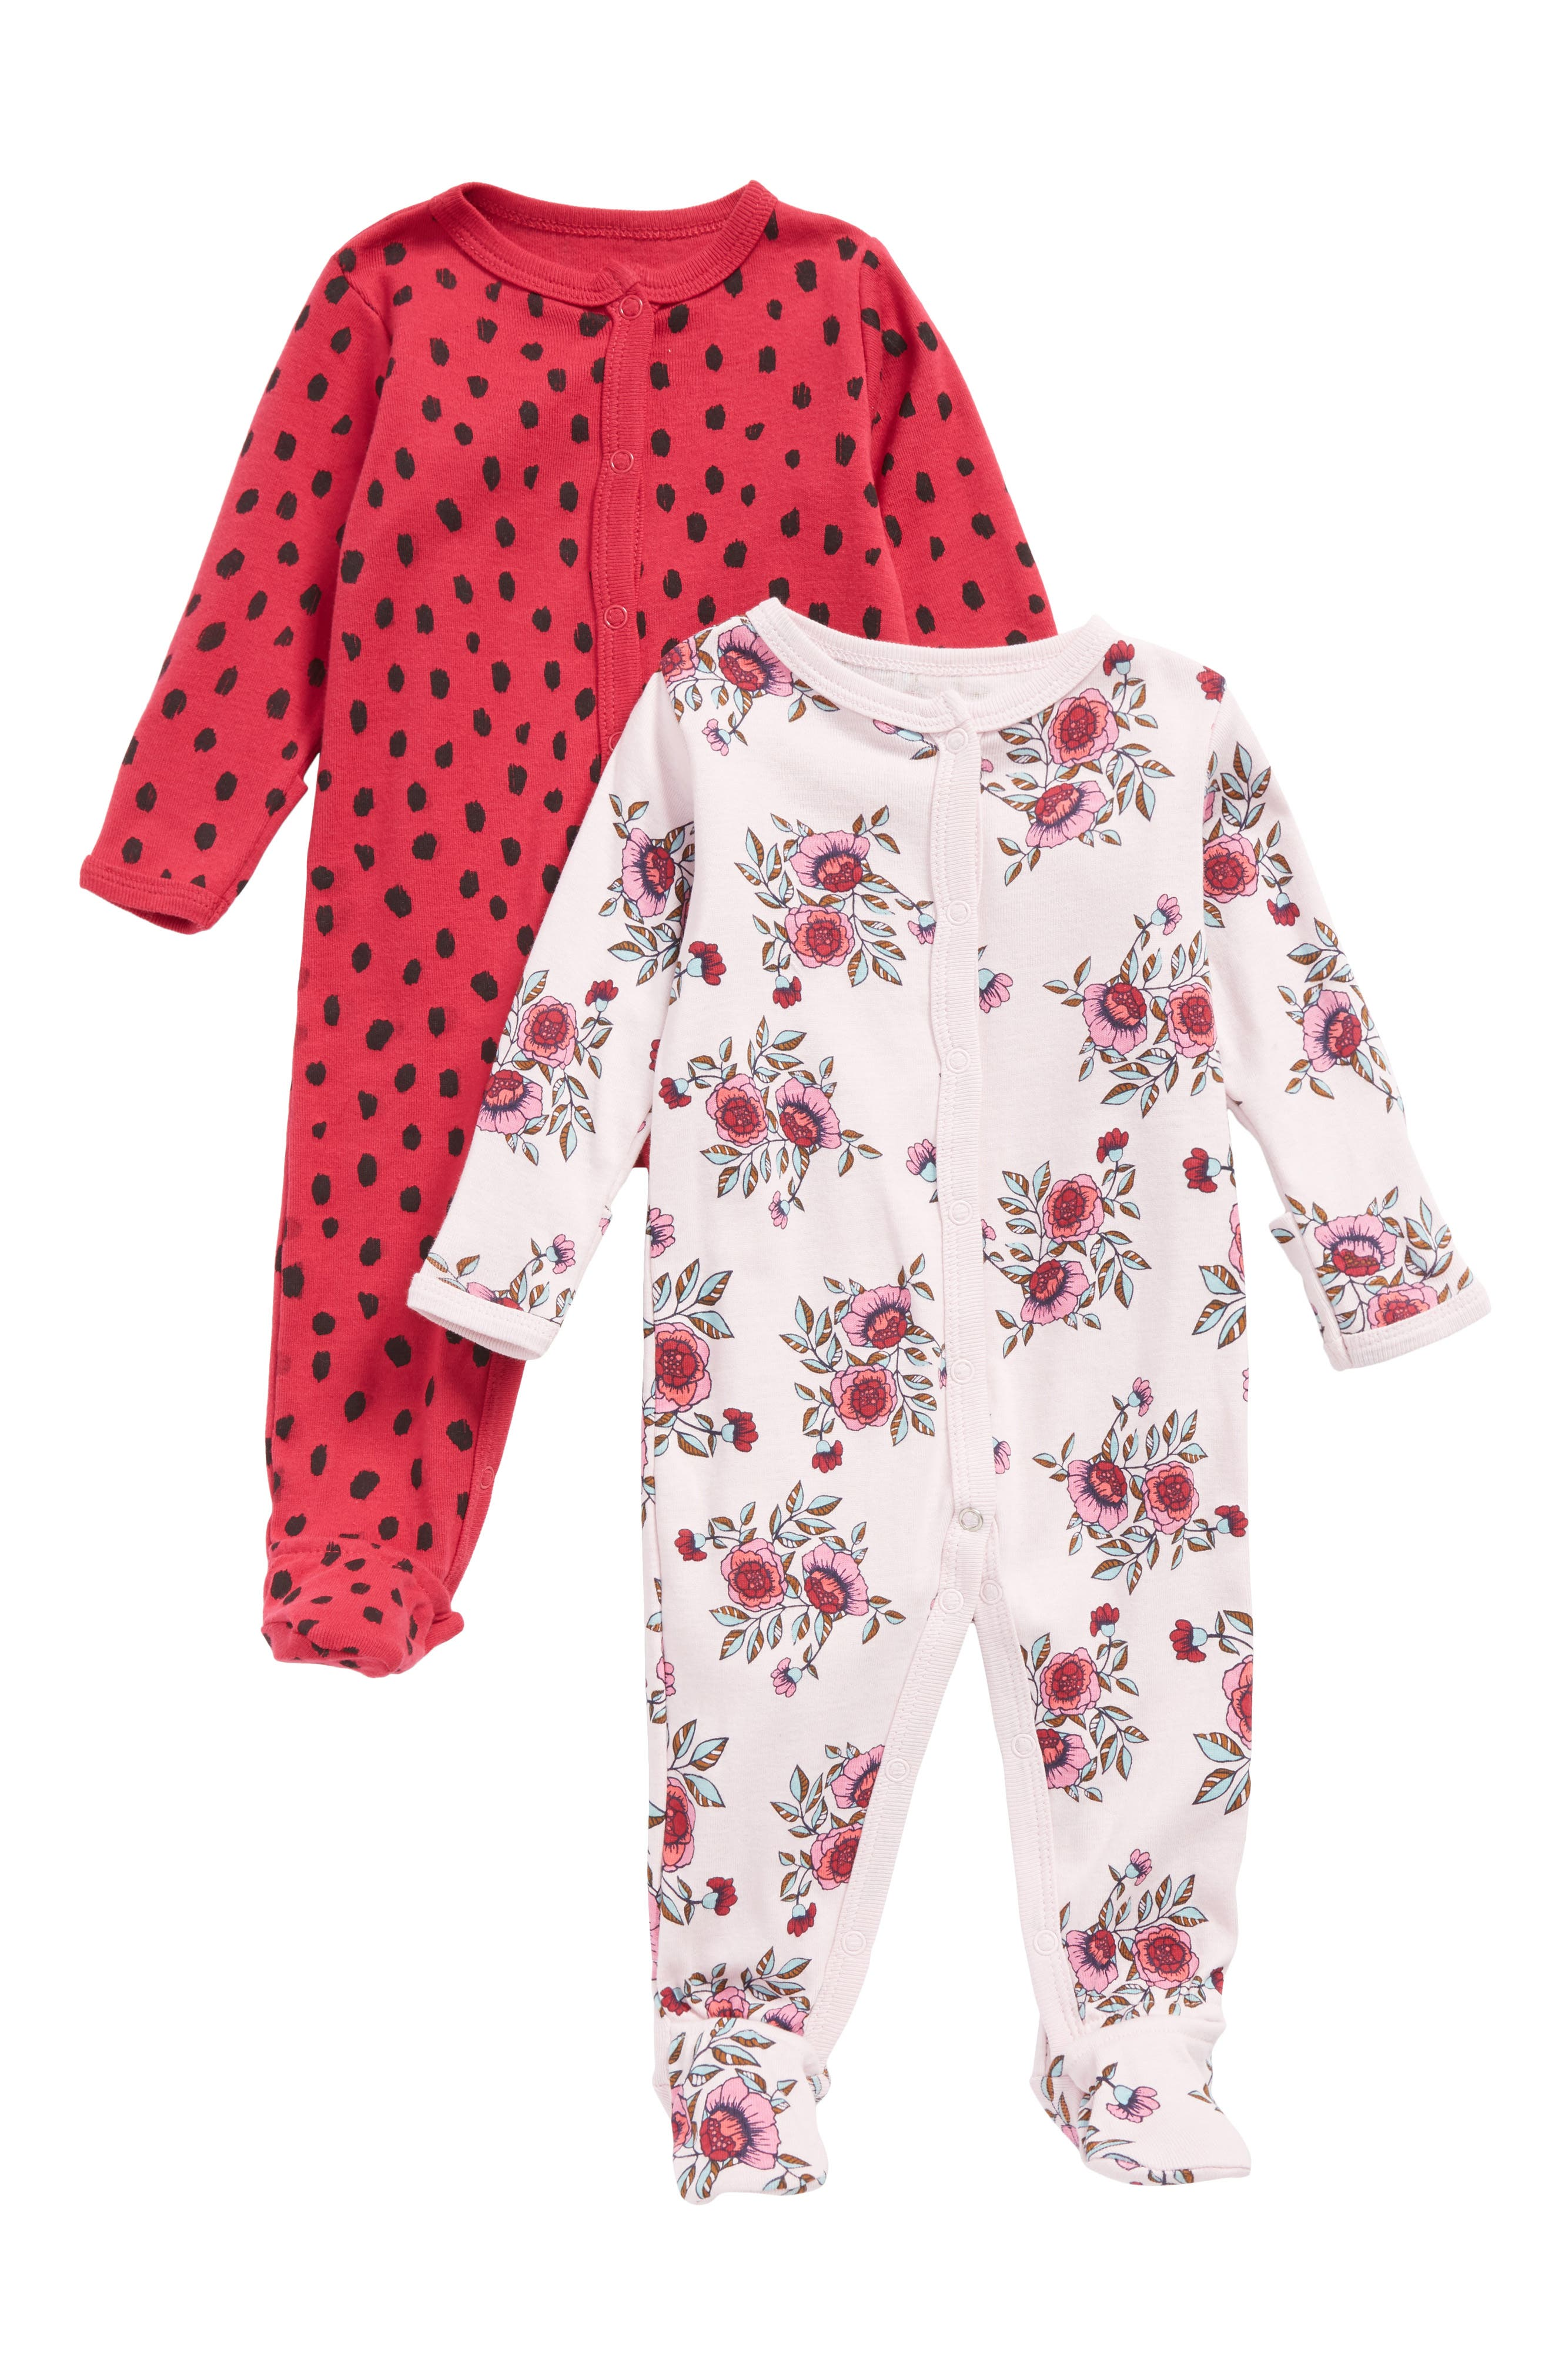 Rosie Pope Set of 2 Footies (Baby Girls)